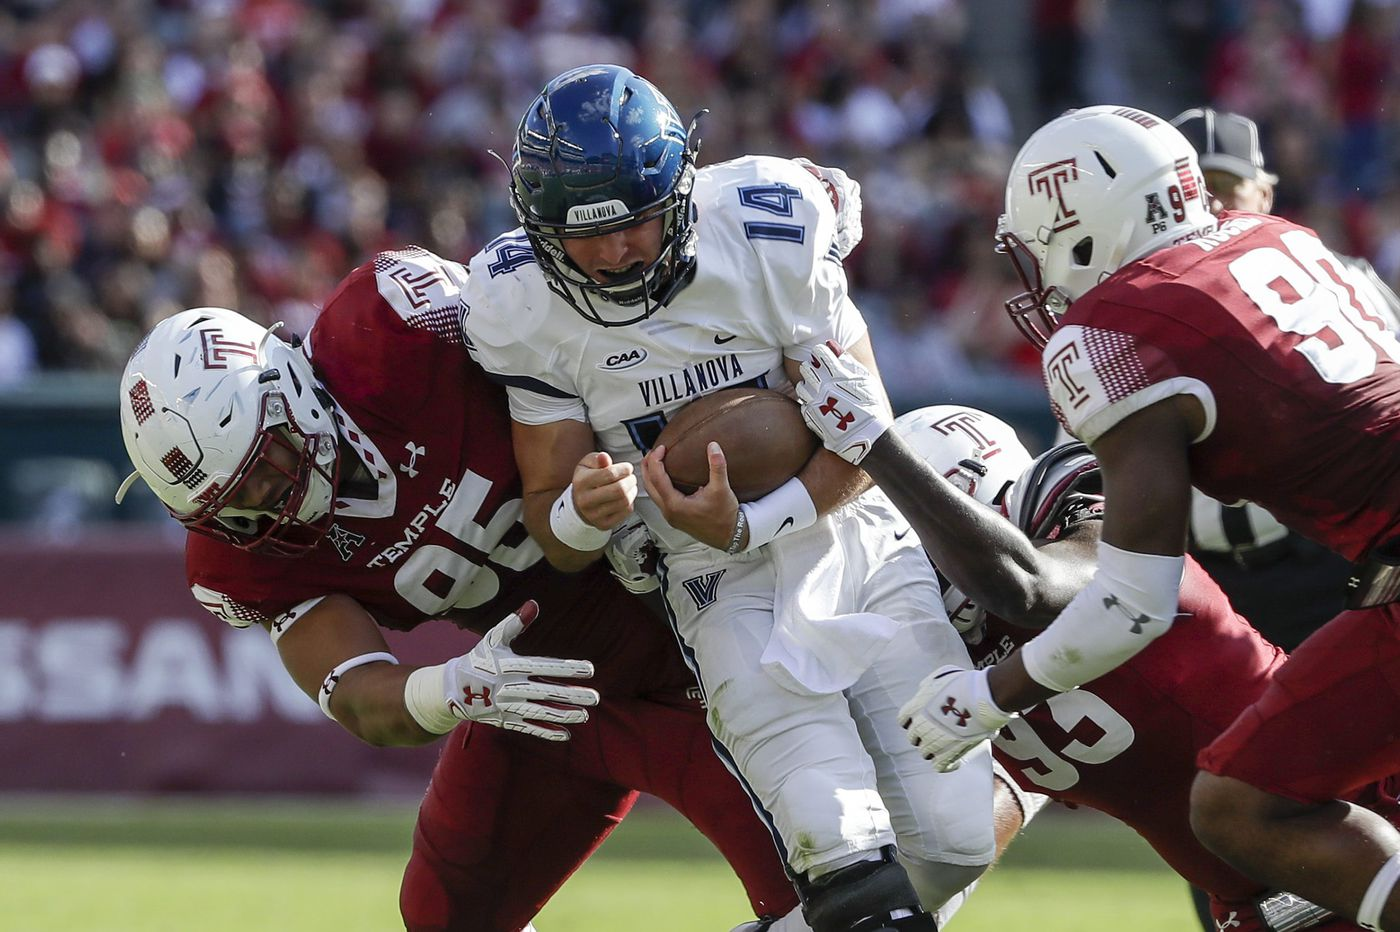 NFL prospect Dan Archibong has made the most of a difficult season at Temple